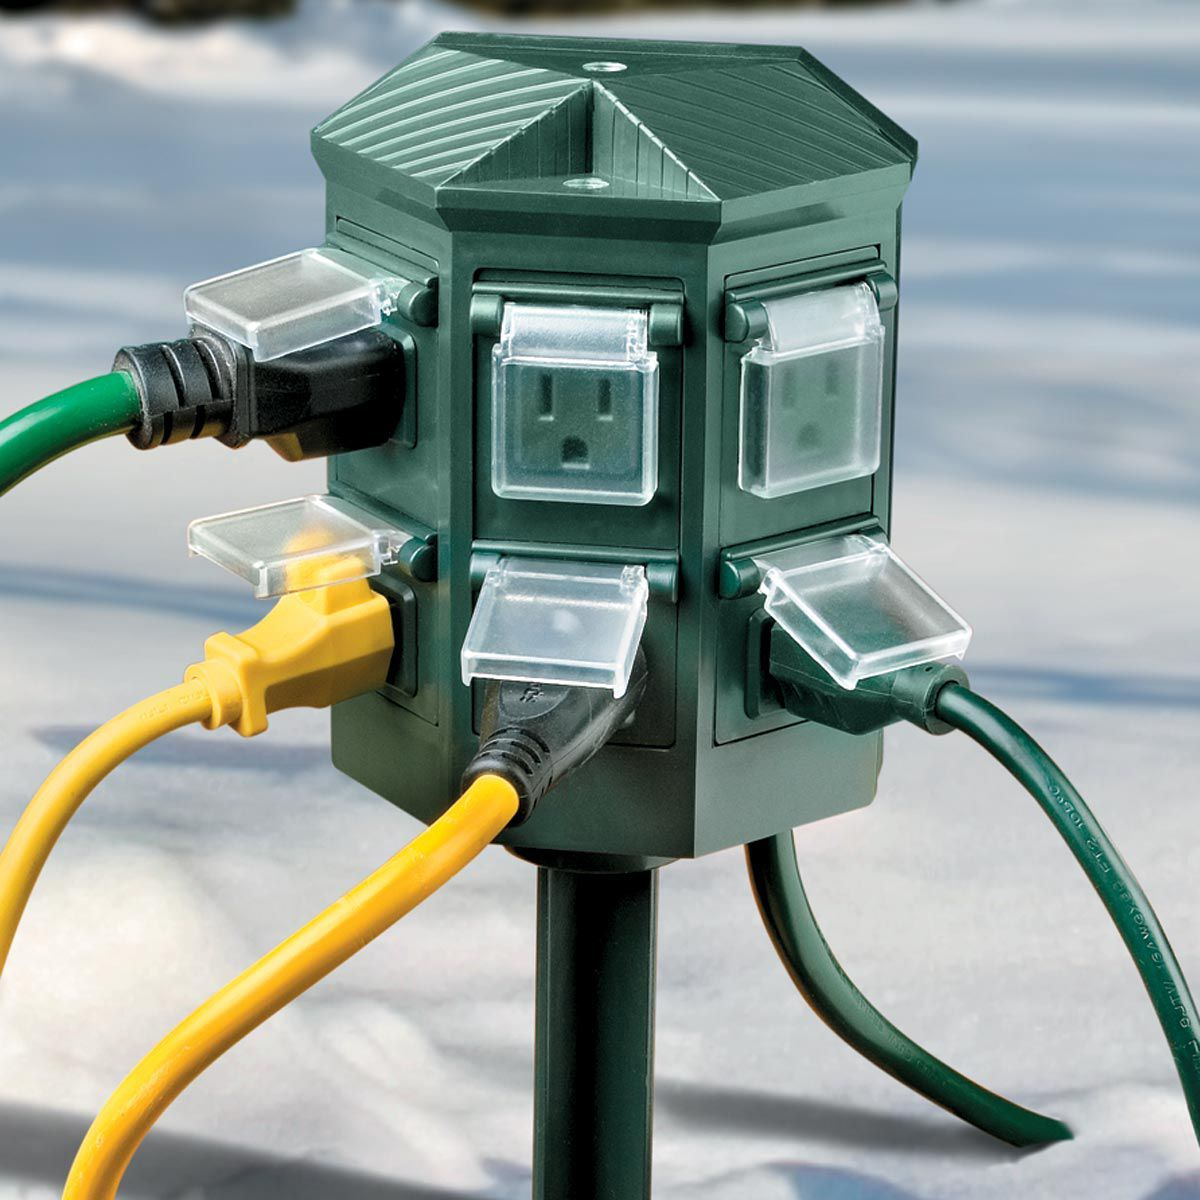 Weatherproof outdoor timer power strip christmas lighting other winners said weatherproof outdoor timer power strip thats what i need because i never remember the christmas lights mozeypictures Images